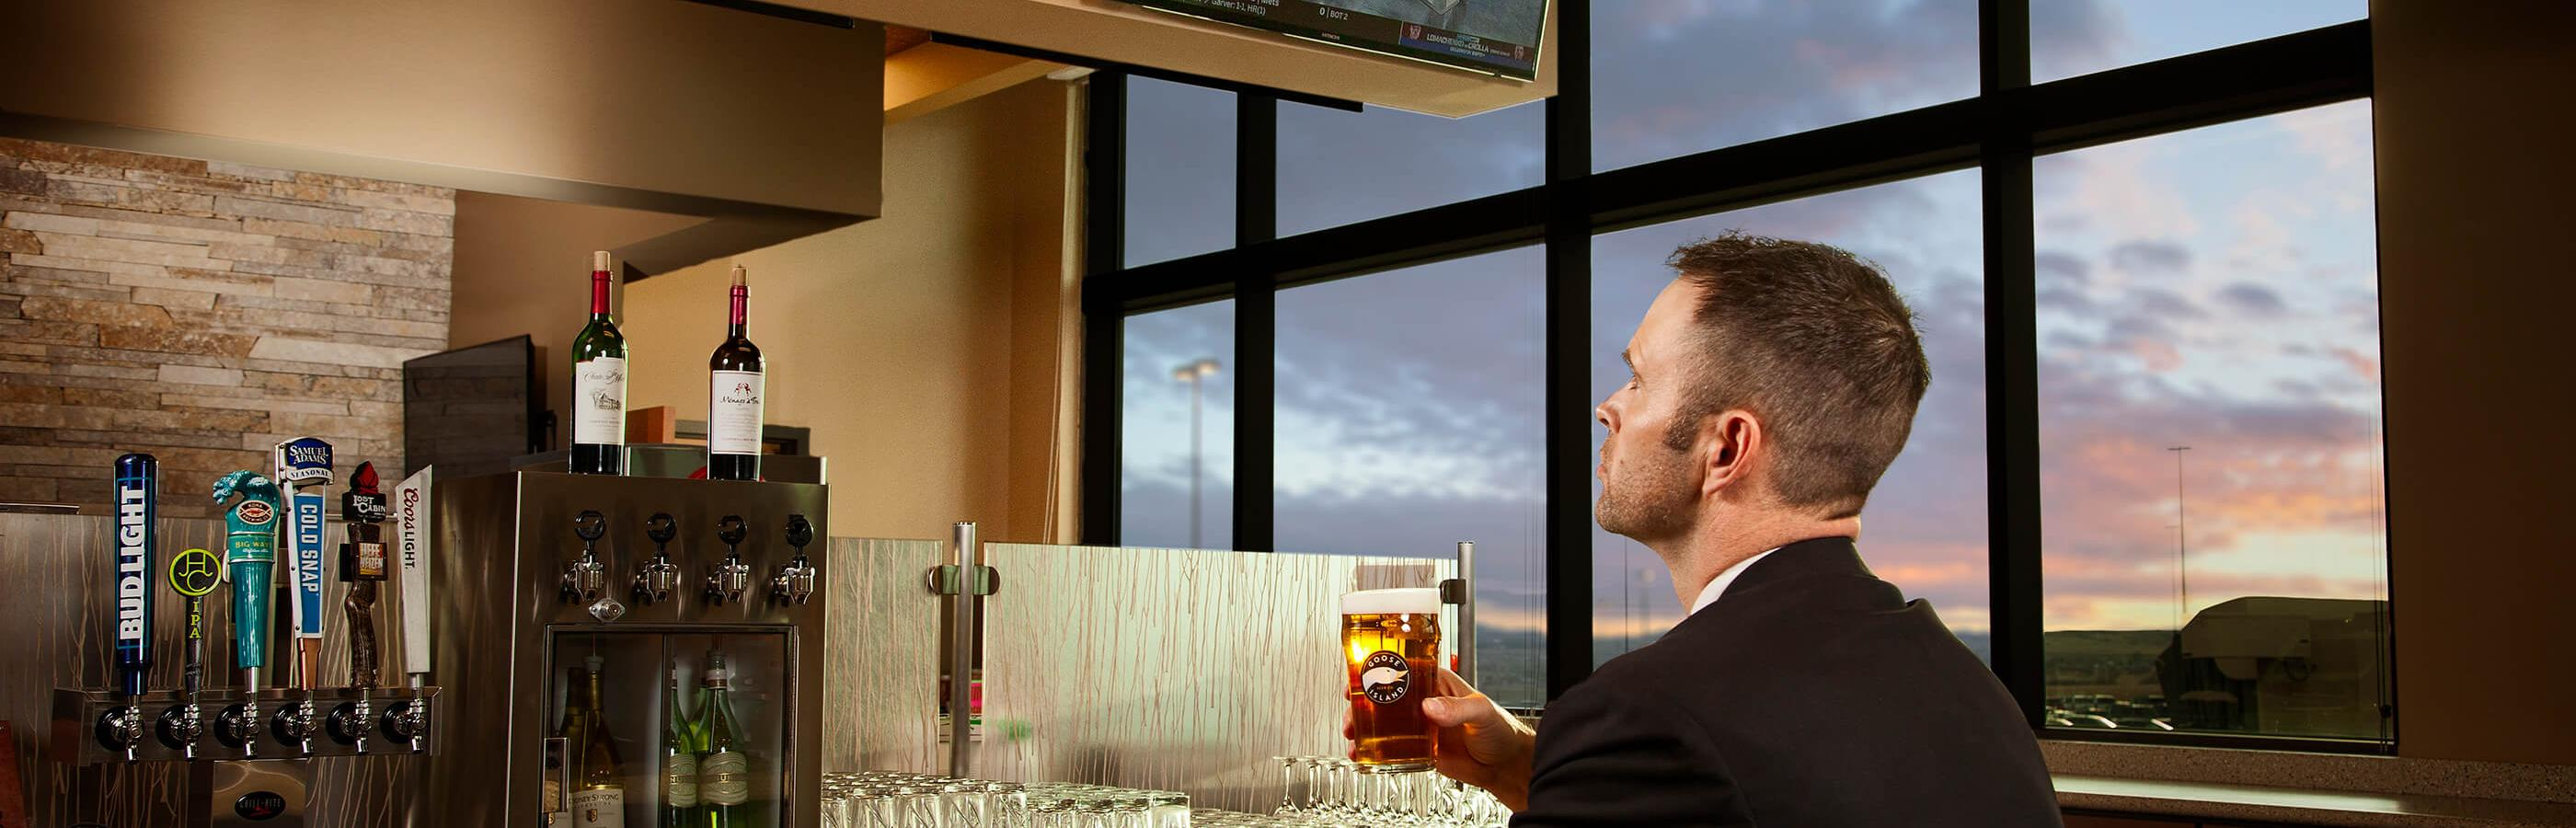 Man drinking beer at Air Host bar in the Rapid City SD Airport